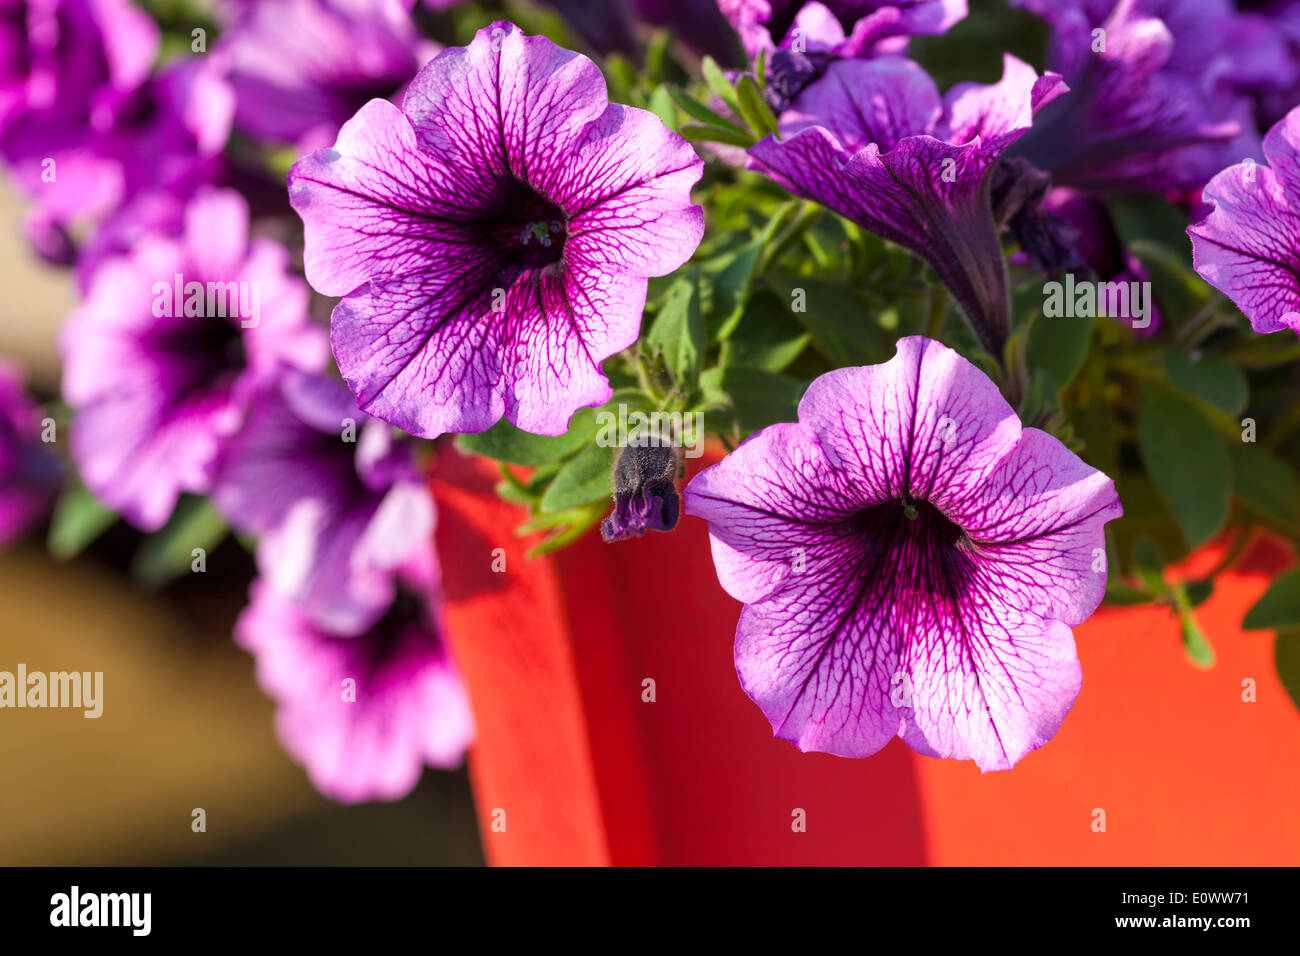 Colorful multiflora petunias in an orange wooden planter or window box. - Stock Image